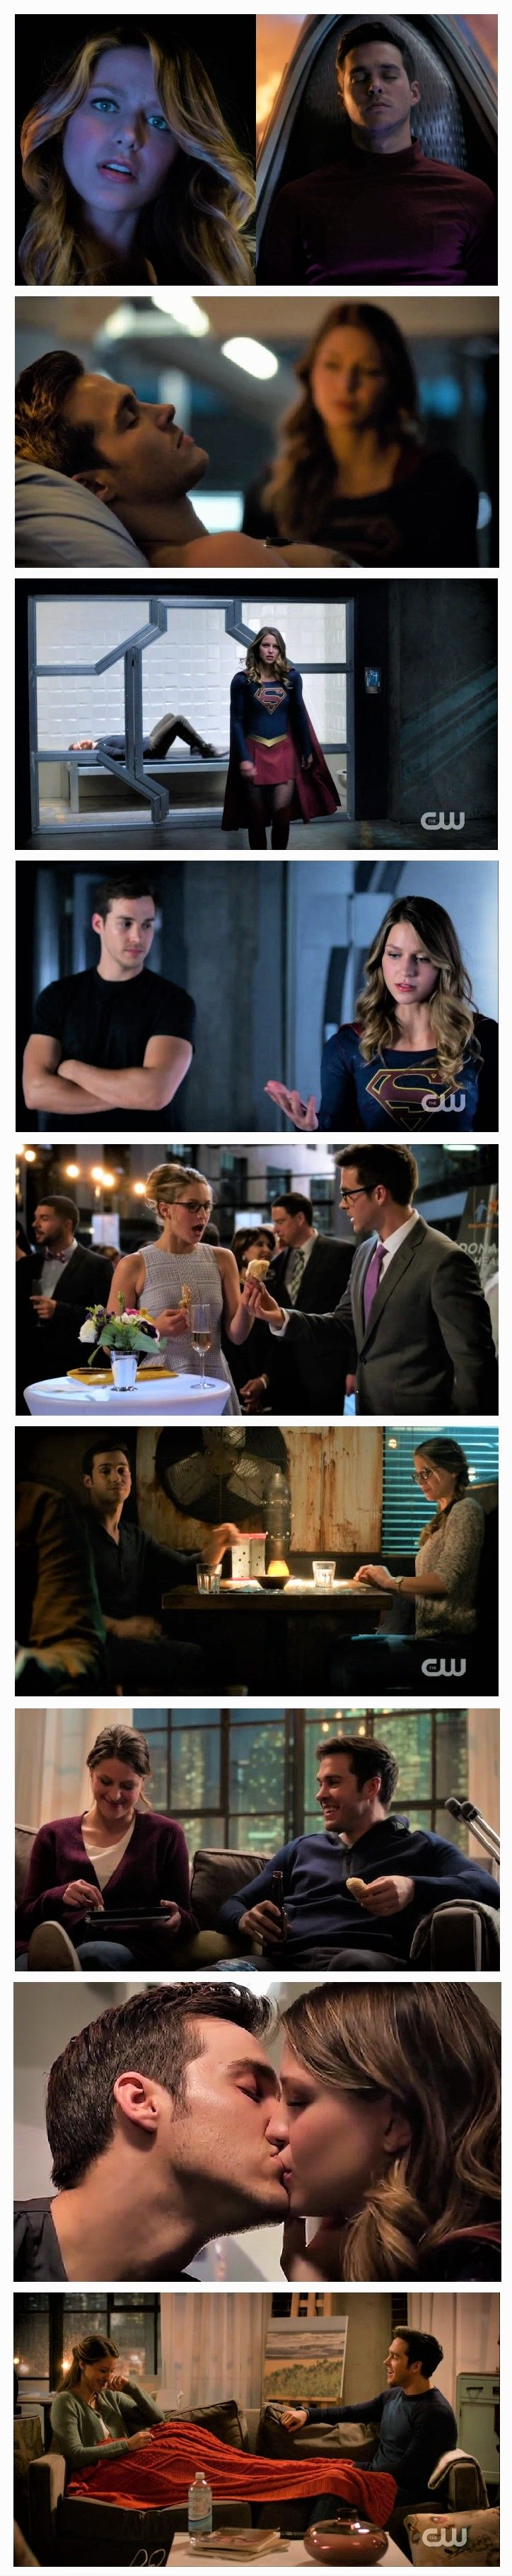 Super long photo edit of Kara and Mon-El from Season 2 (episodes 2x01--2x09). I SO didn't want/need another ship, but the chemistry reeled me in, darn it.   TV Shows  CW  #Supergirl  #Supergirl edit  Kara Danvers  Mon-El  Kara x Mon-El  #Karamel edit  Cute couples  Melissa Benoist  Chris Wood  Collage 